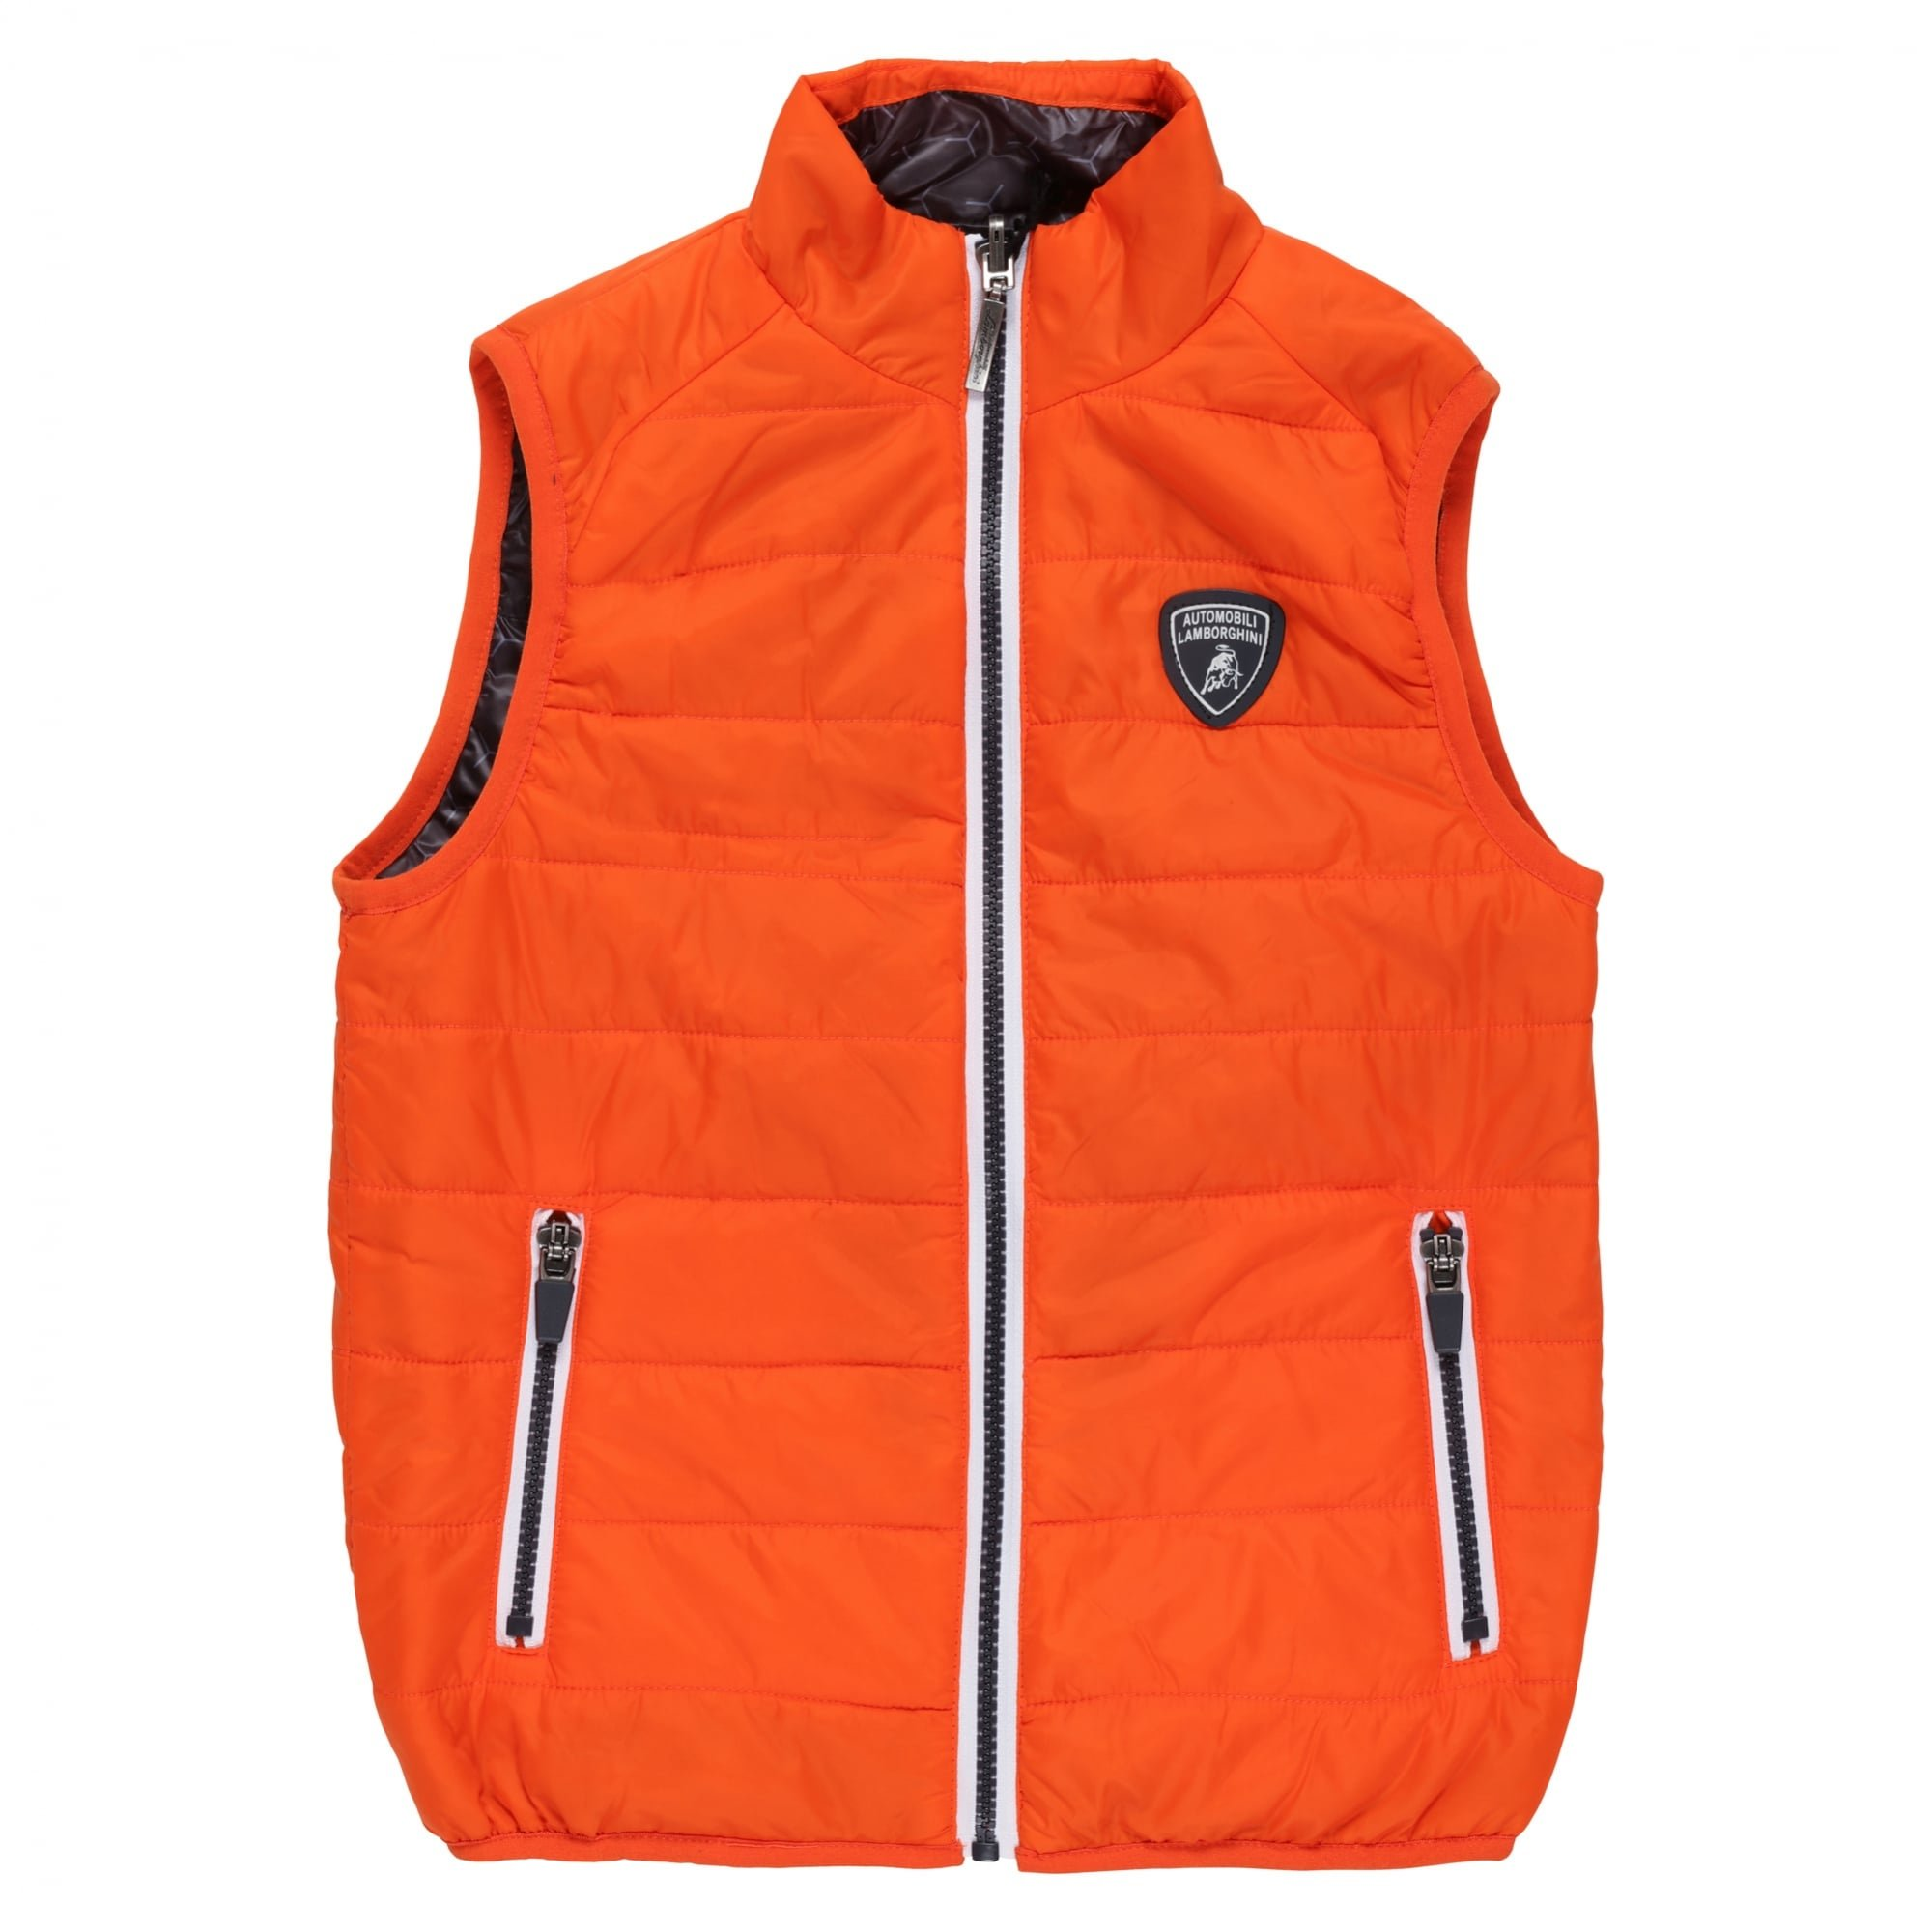 Lamborghini Kids Automobili Lamborghini Reversible Ultralight Down Vest 6 yrs Orange Orange